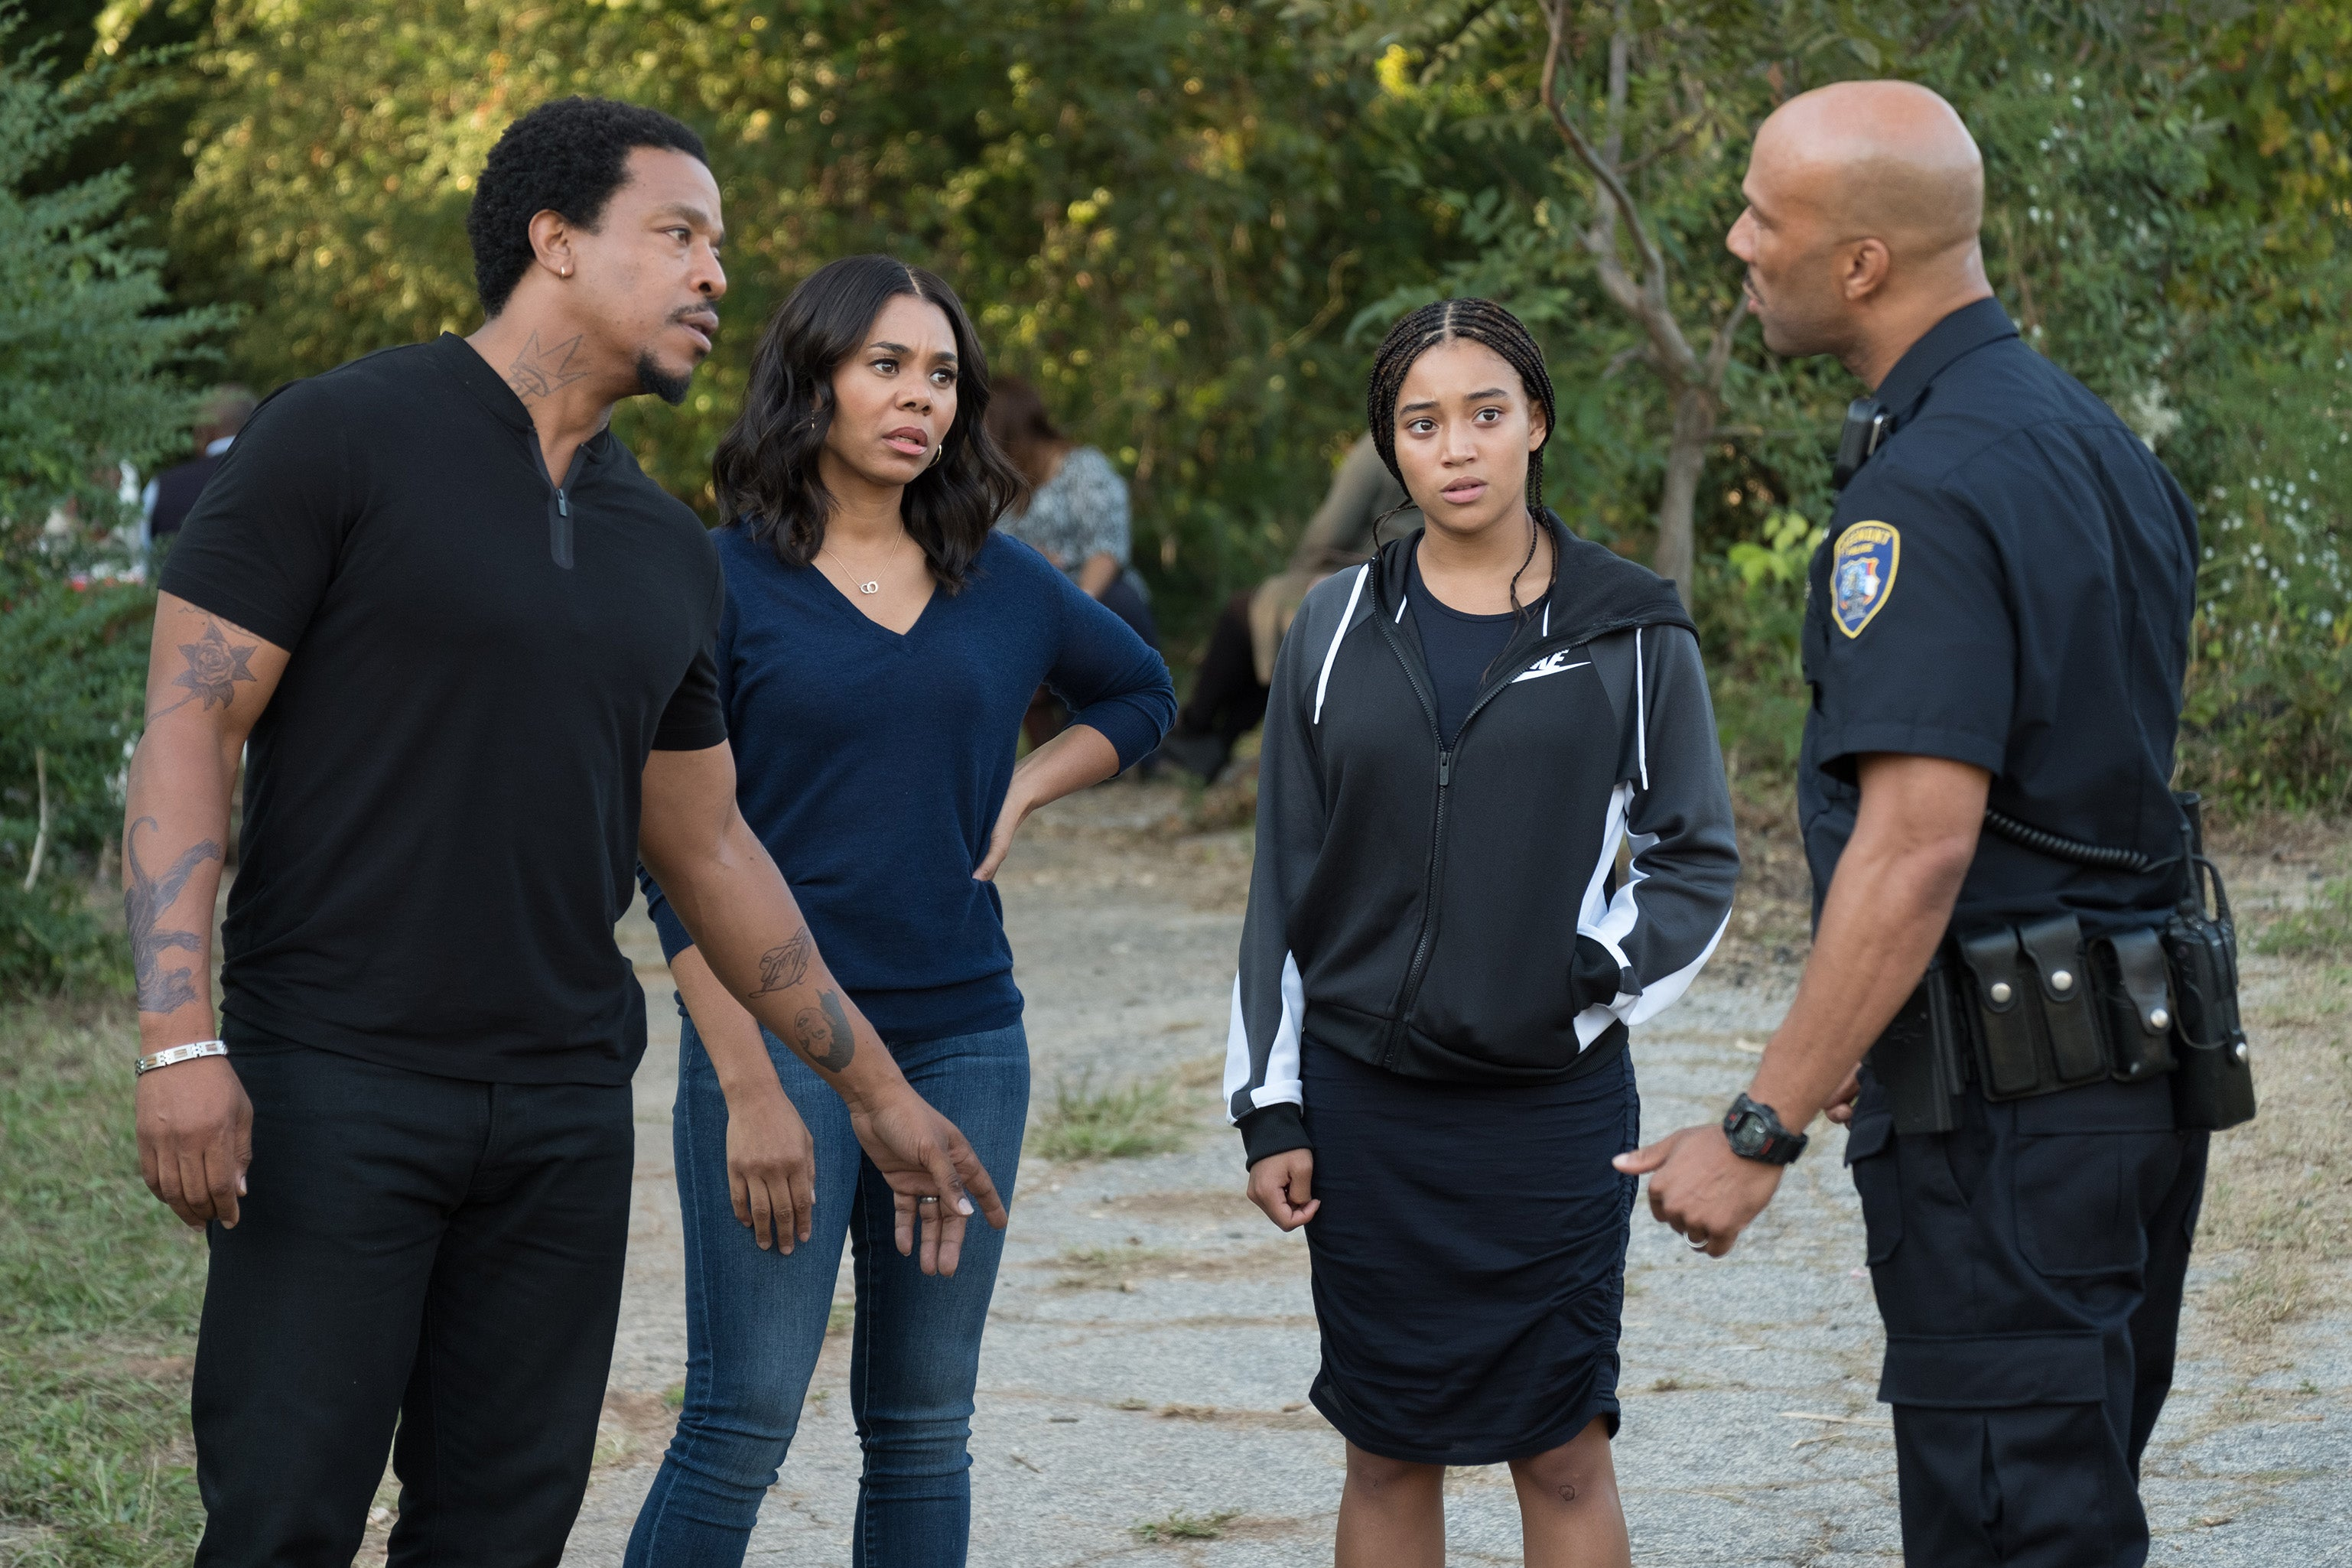 Russell Hornsby, Regina Hall, Amandla Stenberg, and Common. Common wears a navy police uniform.